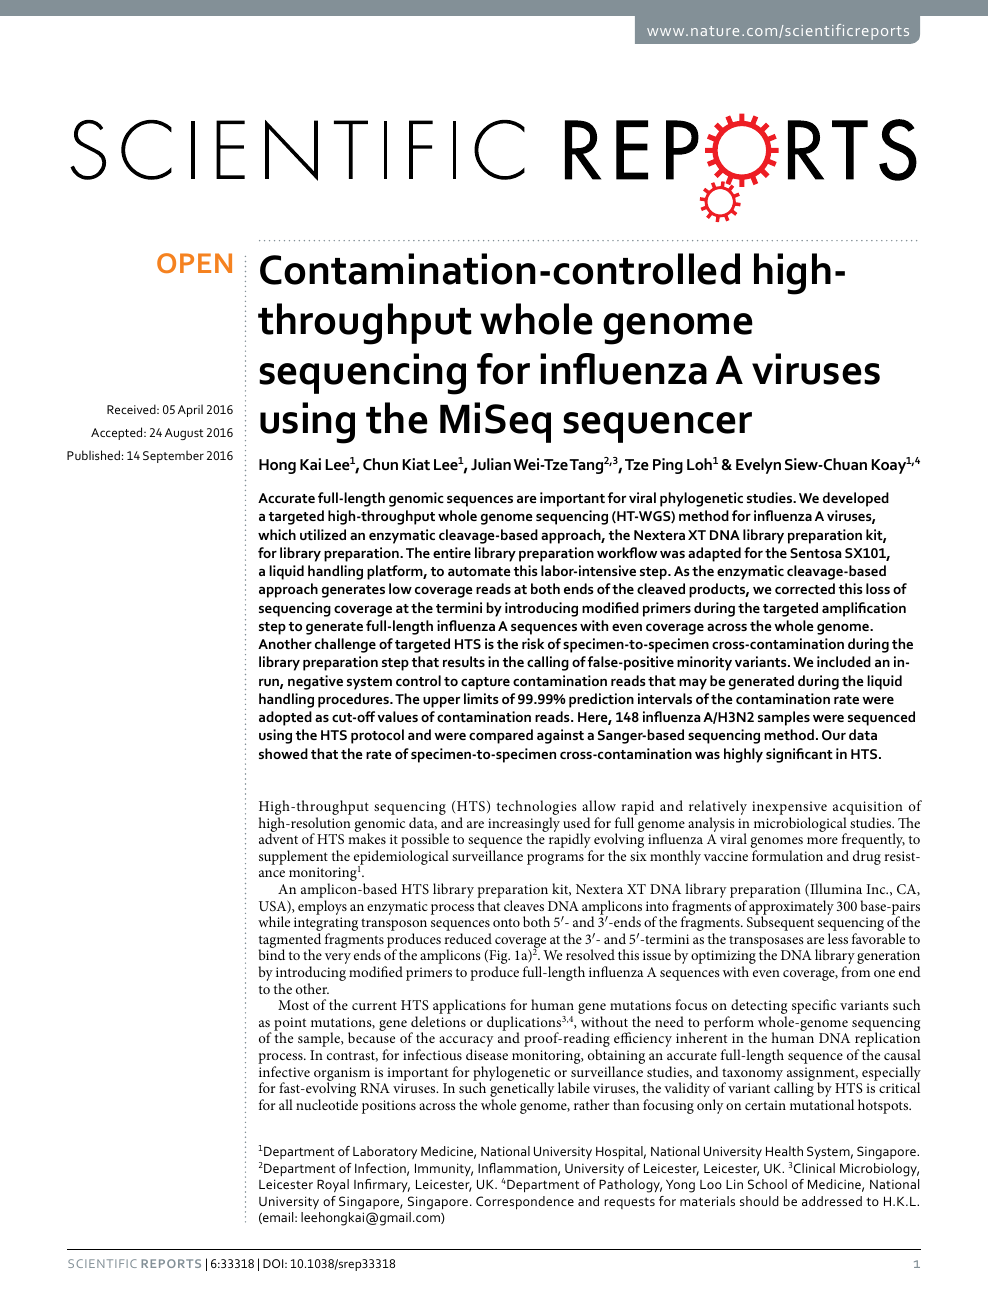 Contamination-controlled high-throughput whole genome